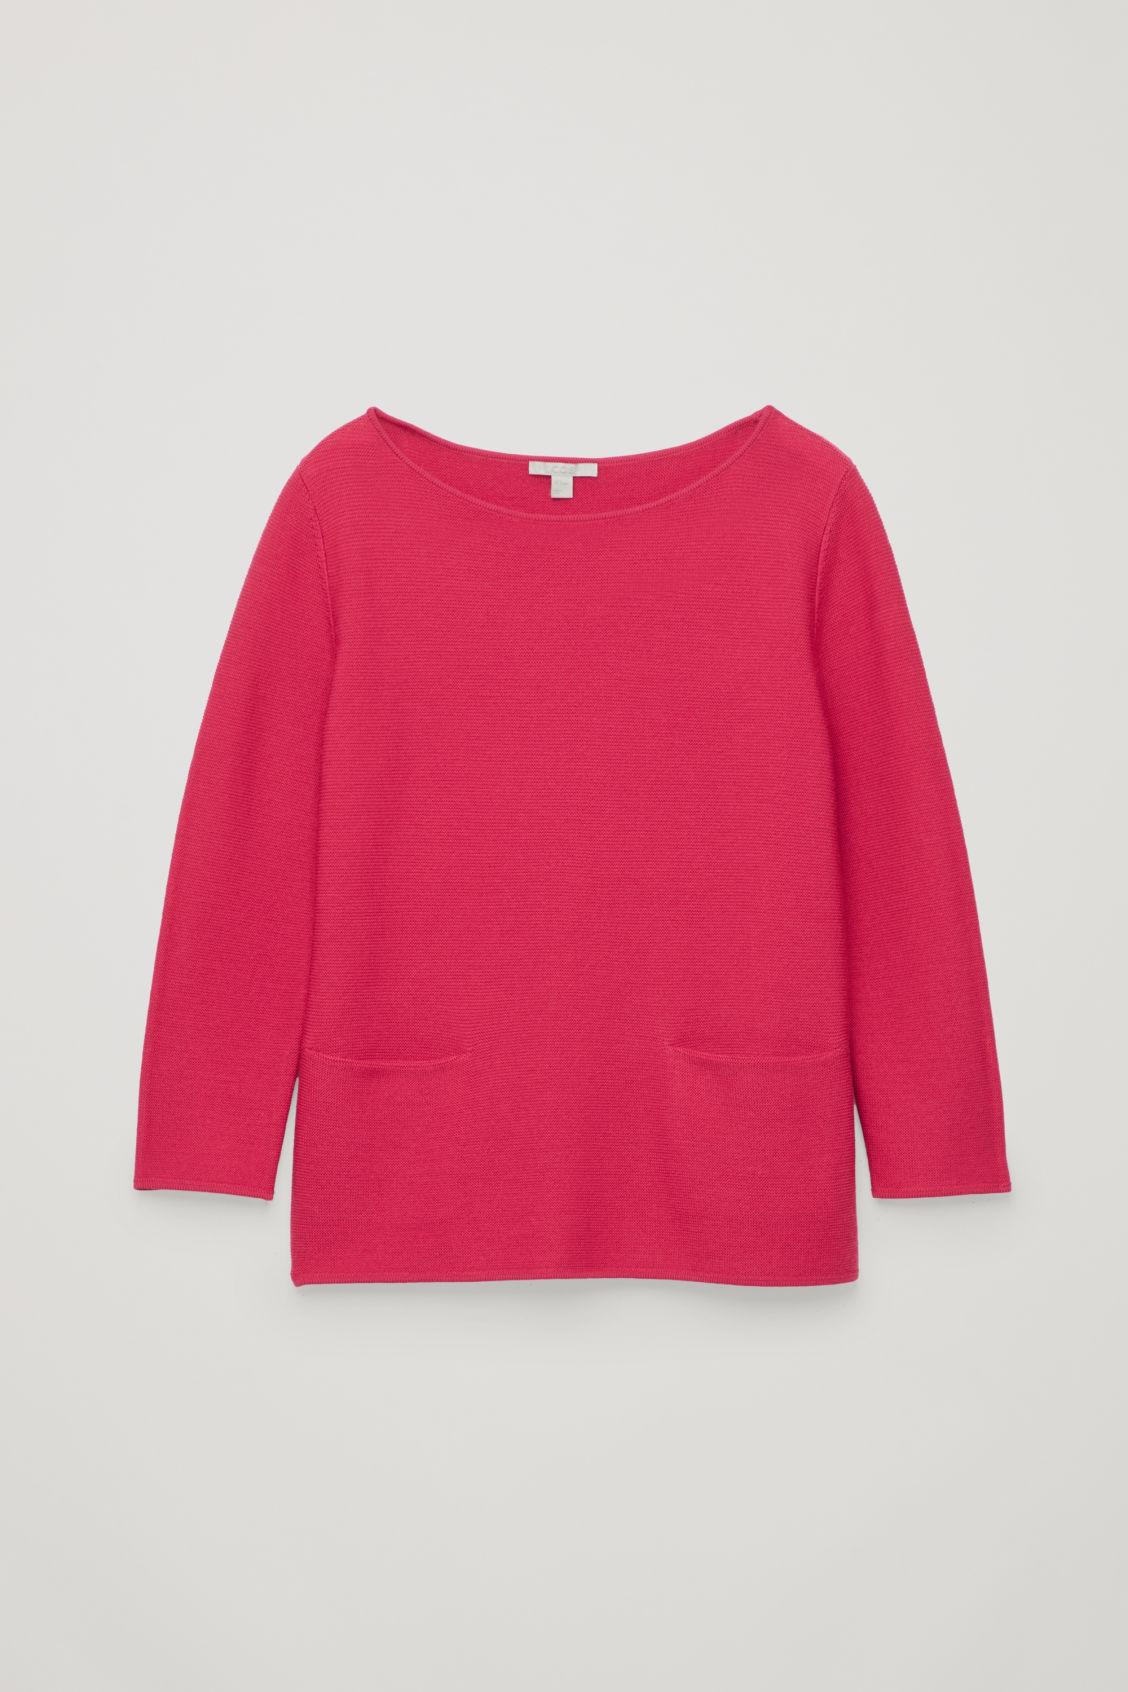 Cos A-line Knit Jumper In Pink